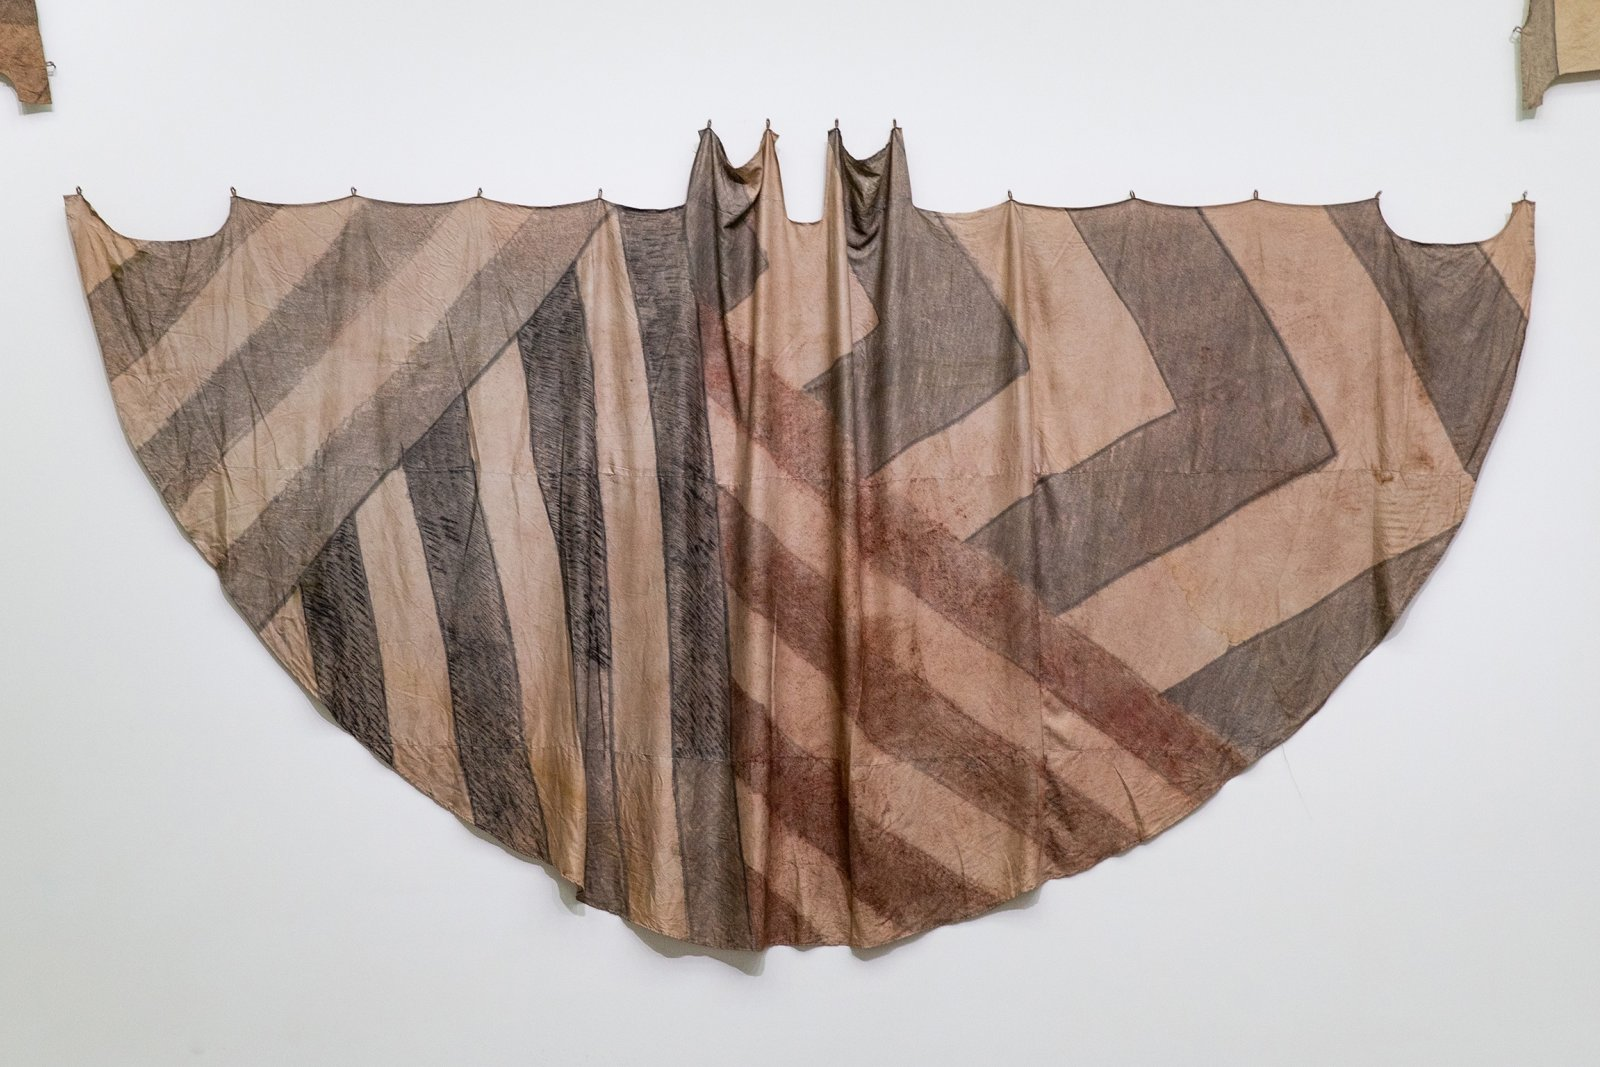 Duane Linklater, Tipi cover for deep forest dazzle / four on the floor for Tobias, 2018, digital print on hand-dyed linen, sumac, cedar, charcoal, nails, 117 x 230 in. (296 x 584 cm). Installation view, Post-Nature—A Museum as an Ecosystem, Taipei Biennial 2018, Taipei Fine Arts Museum, Taiwan, 2018